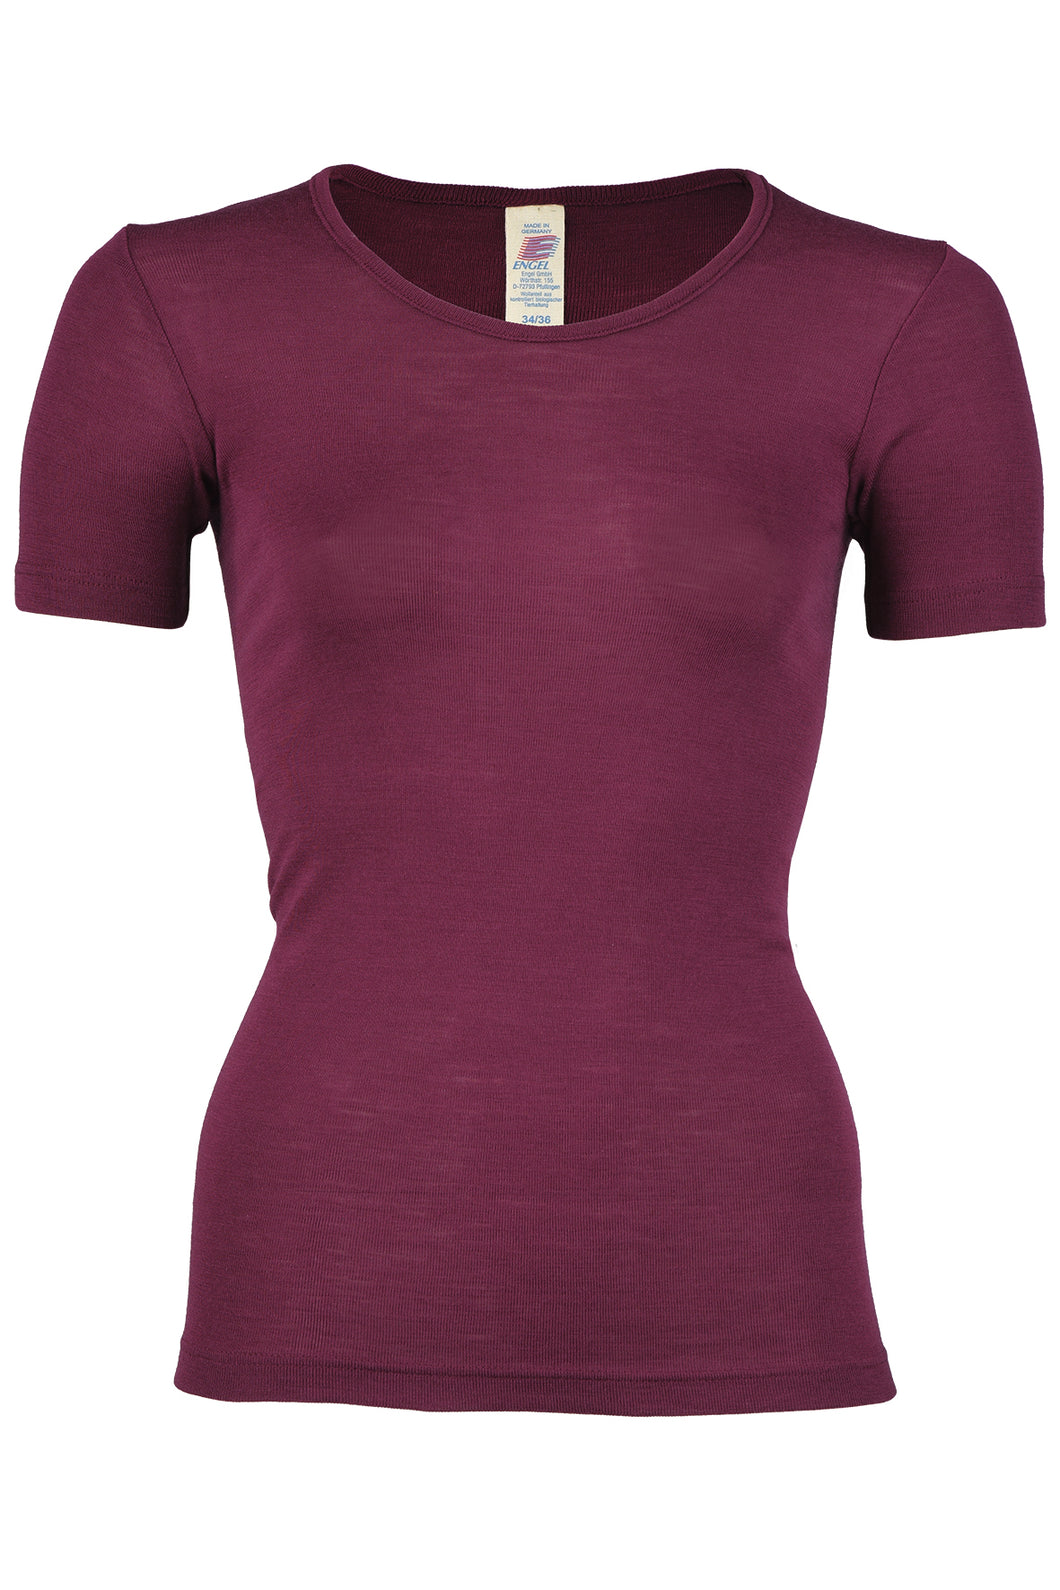 Engel Women T-Shirt, Wool/Silk - SALE